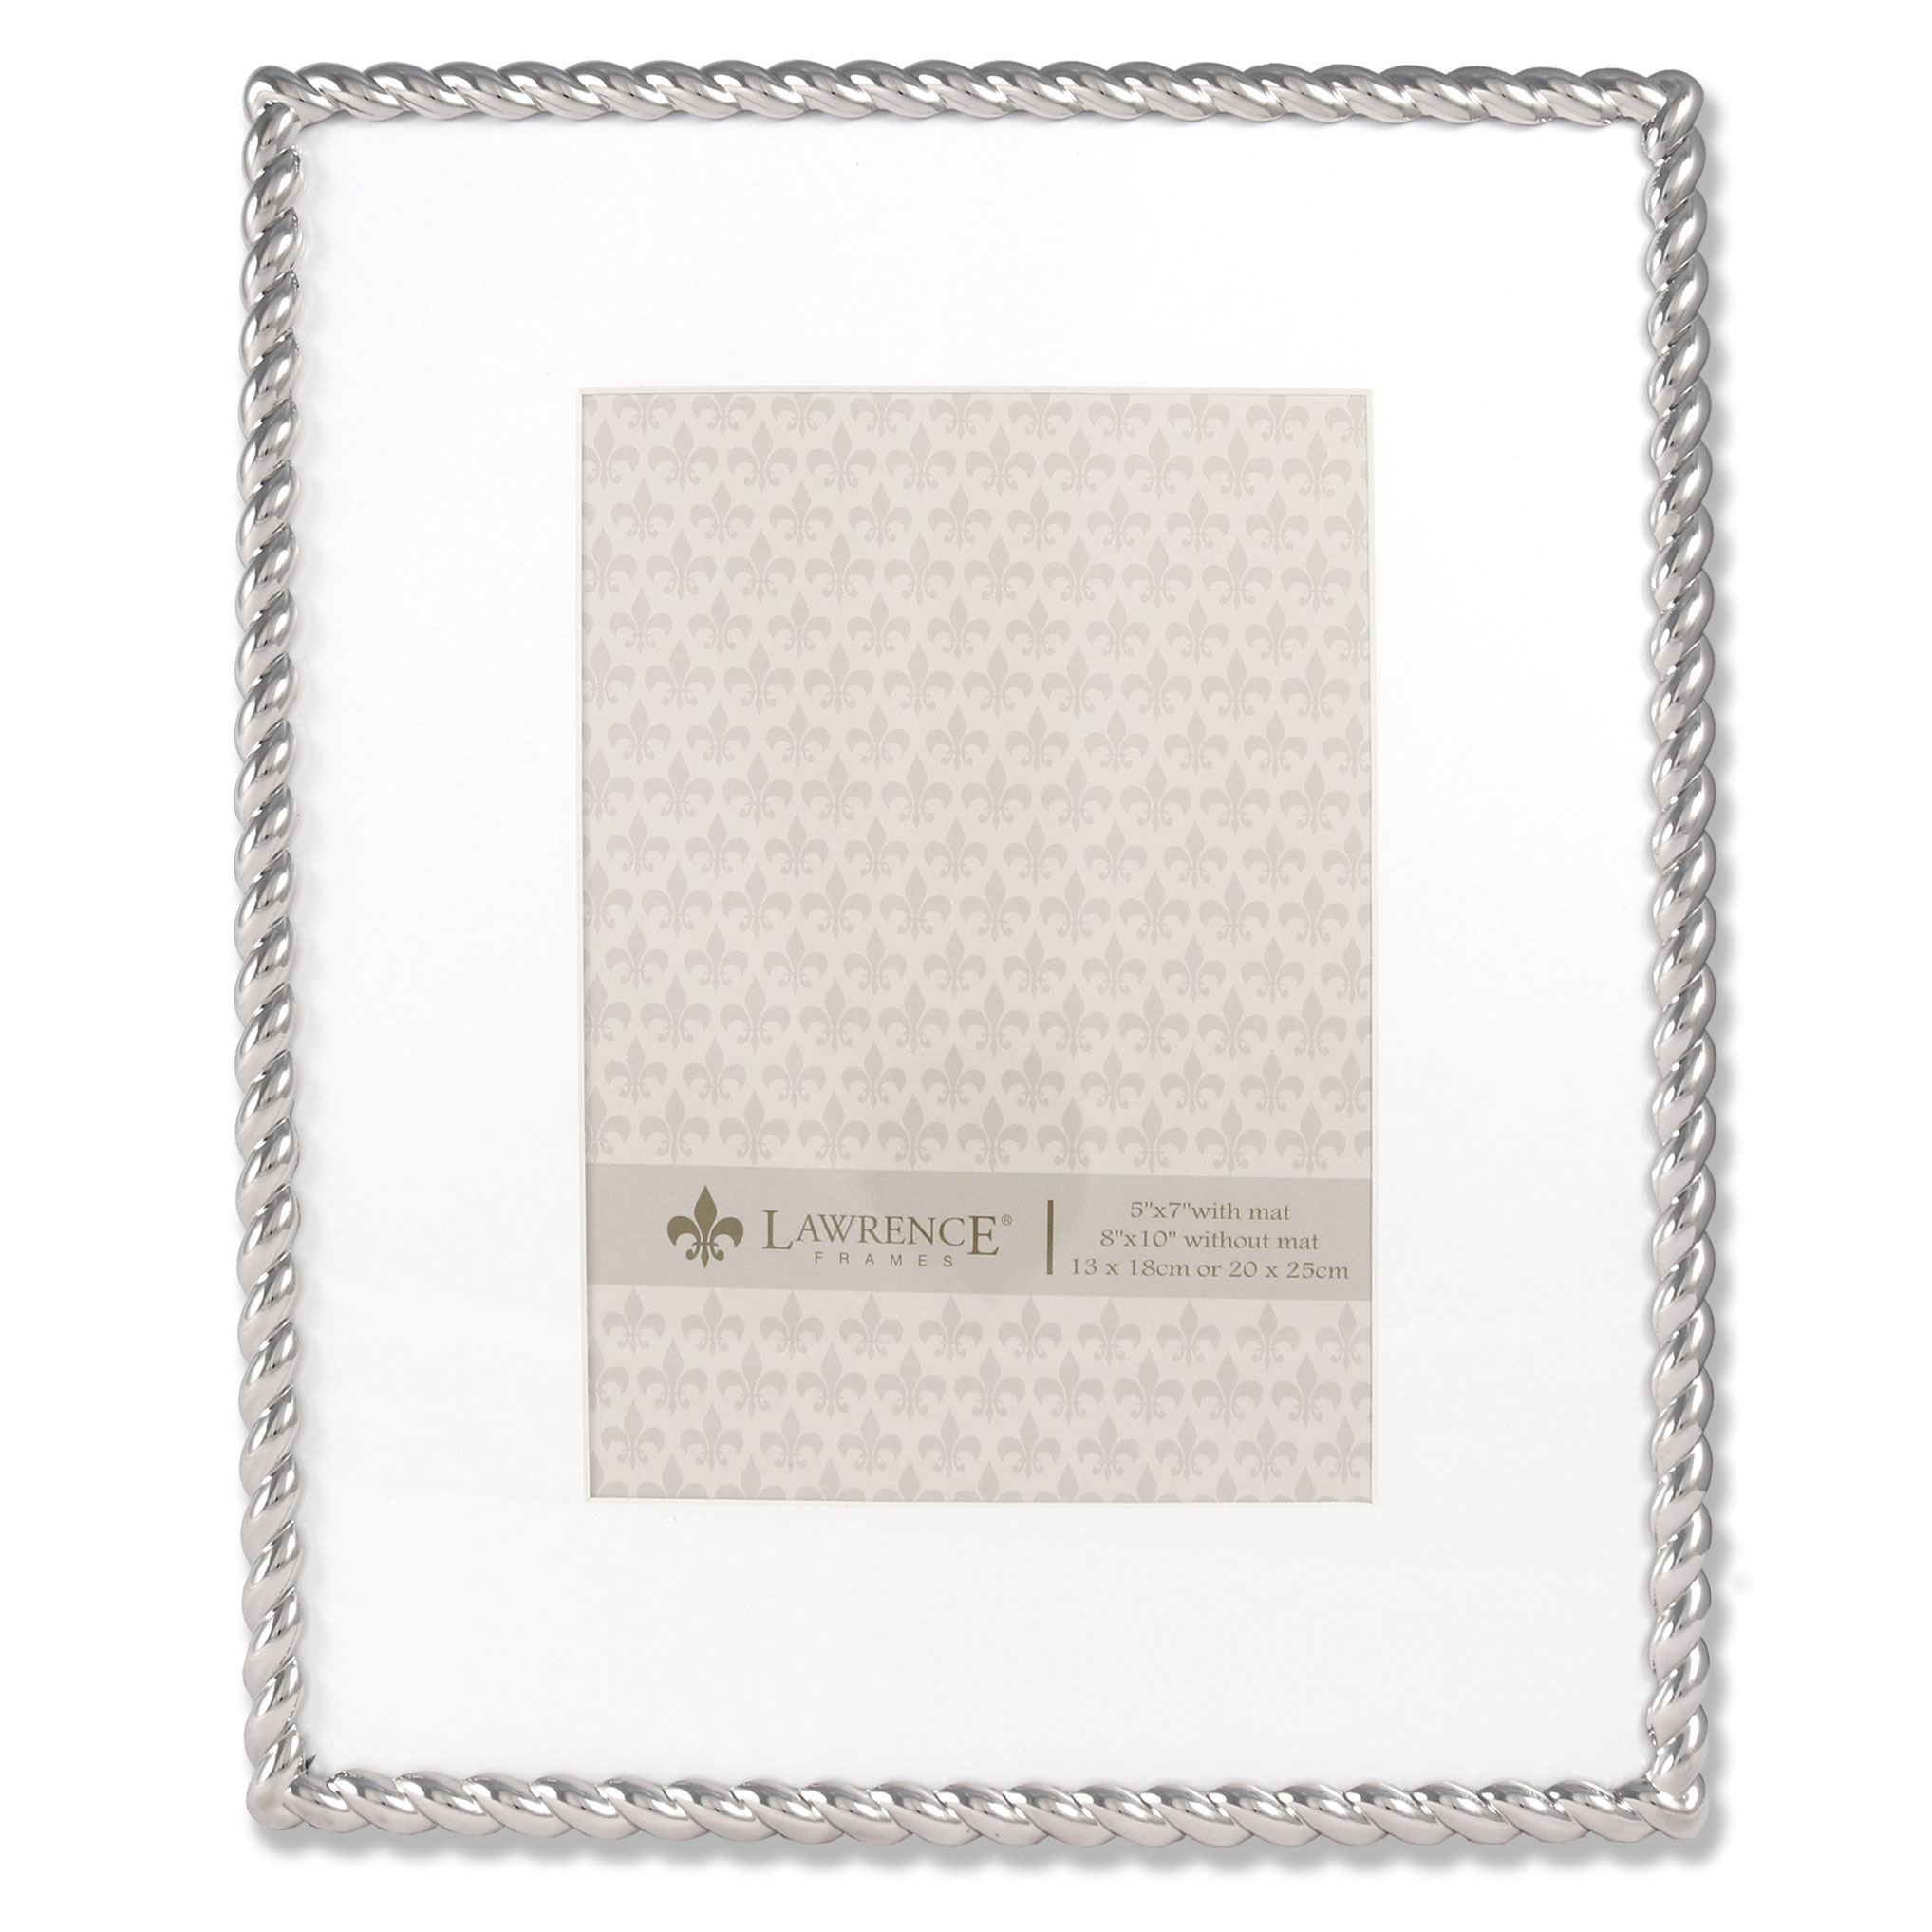 710080 silver metal rope 8x10 matted for 5x7 picture frame 710080 silver metal rope 8x10 matted for 5x7 picture frame jeuxipadfo Image collections